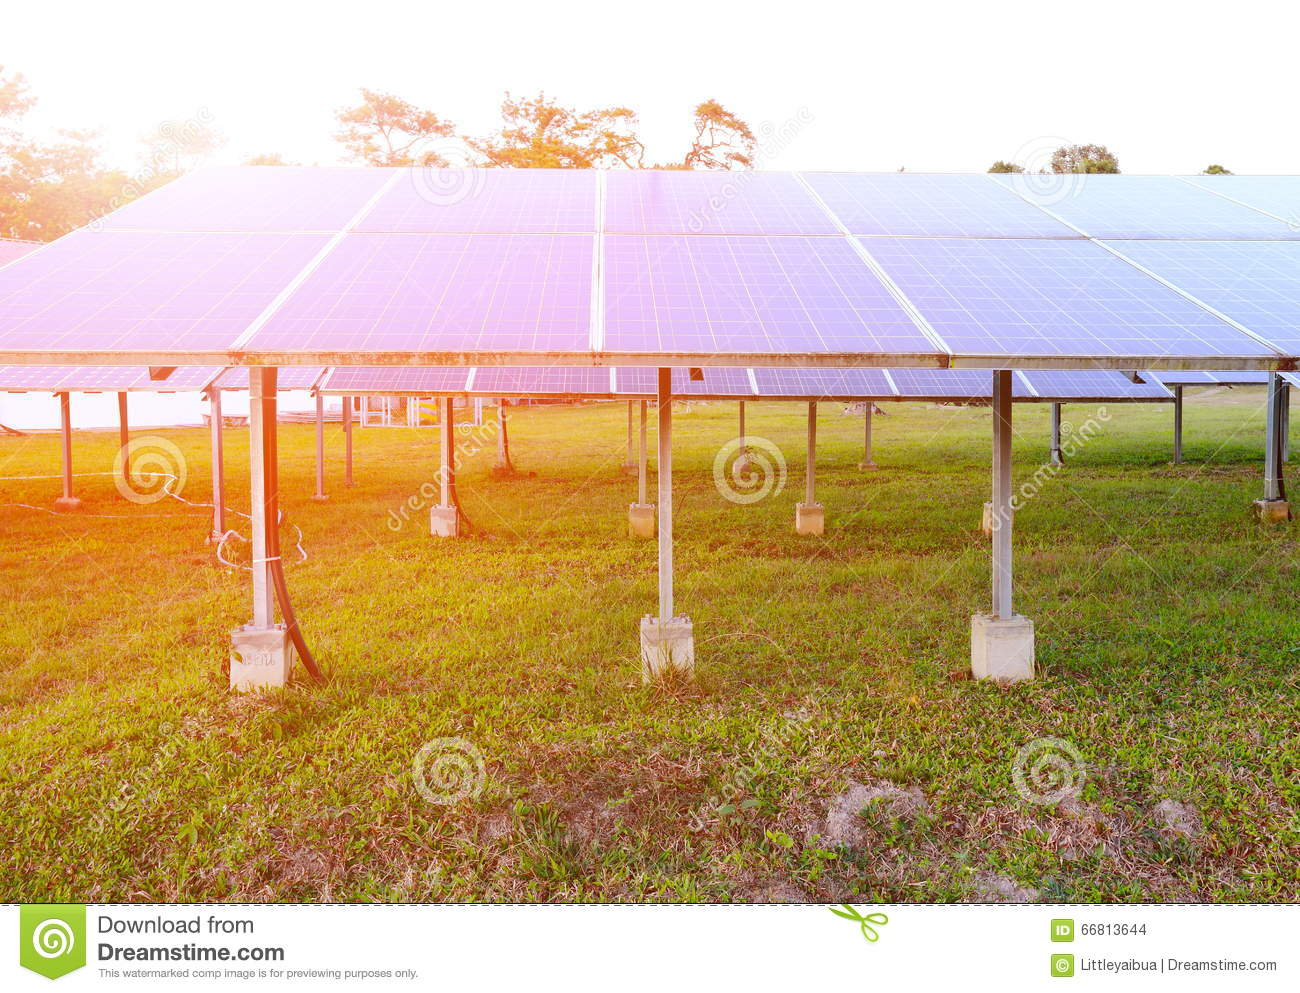 Solar panel produces renewable energy,friendly energy from the